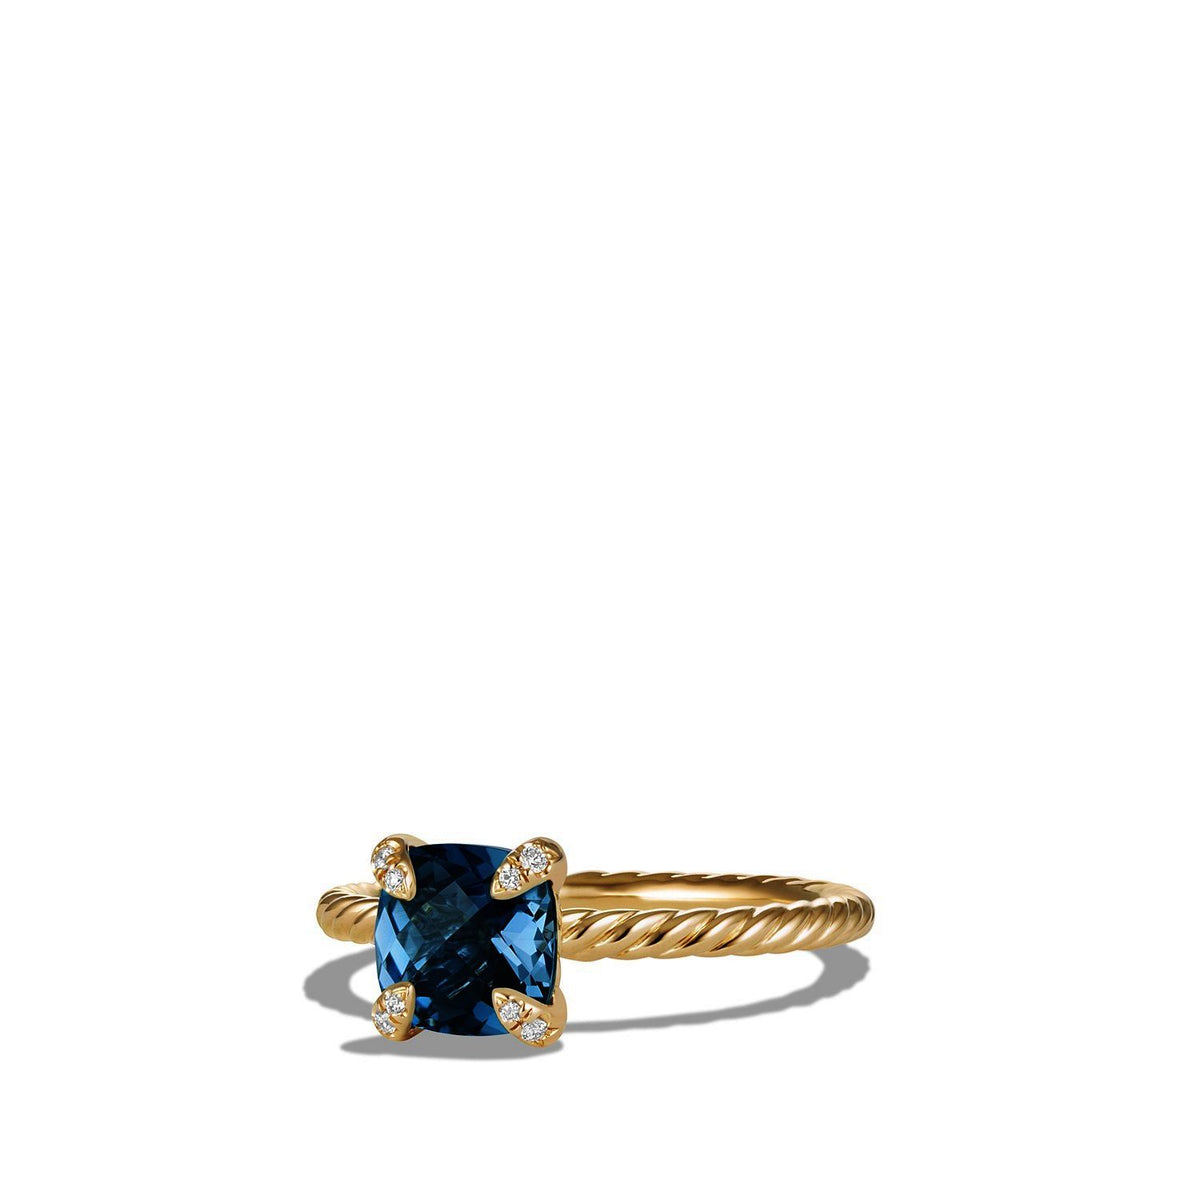 Chatelaine Ring with Hampton Blue Topaz and Diamonds in 18K Gold